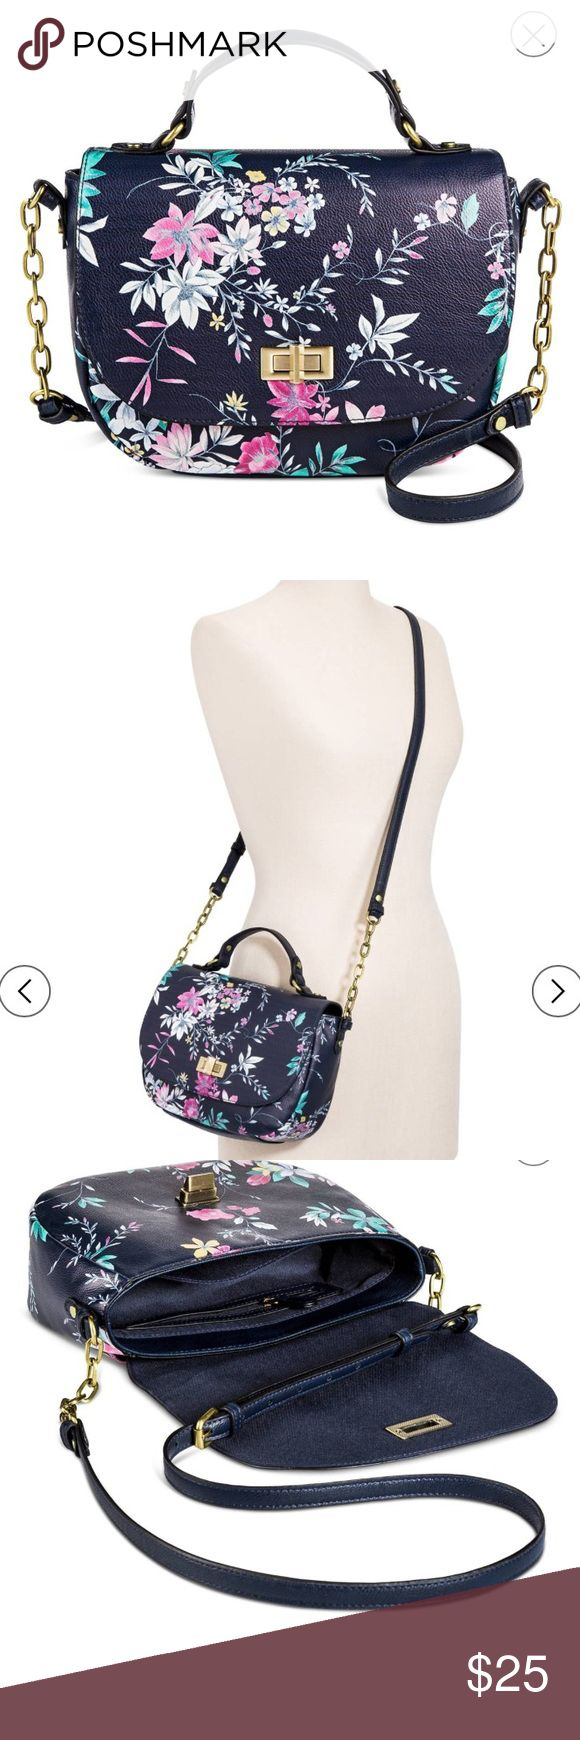 Cross body floral and navy purse New without tags cross body purse. Cute floral detailing and navy background Bags Crossbody Bags